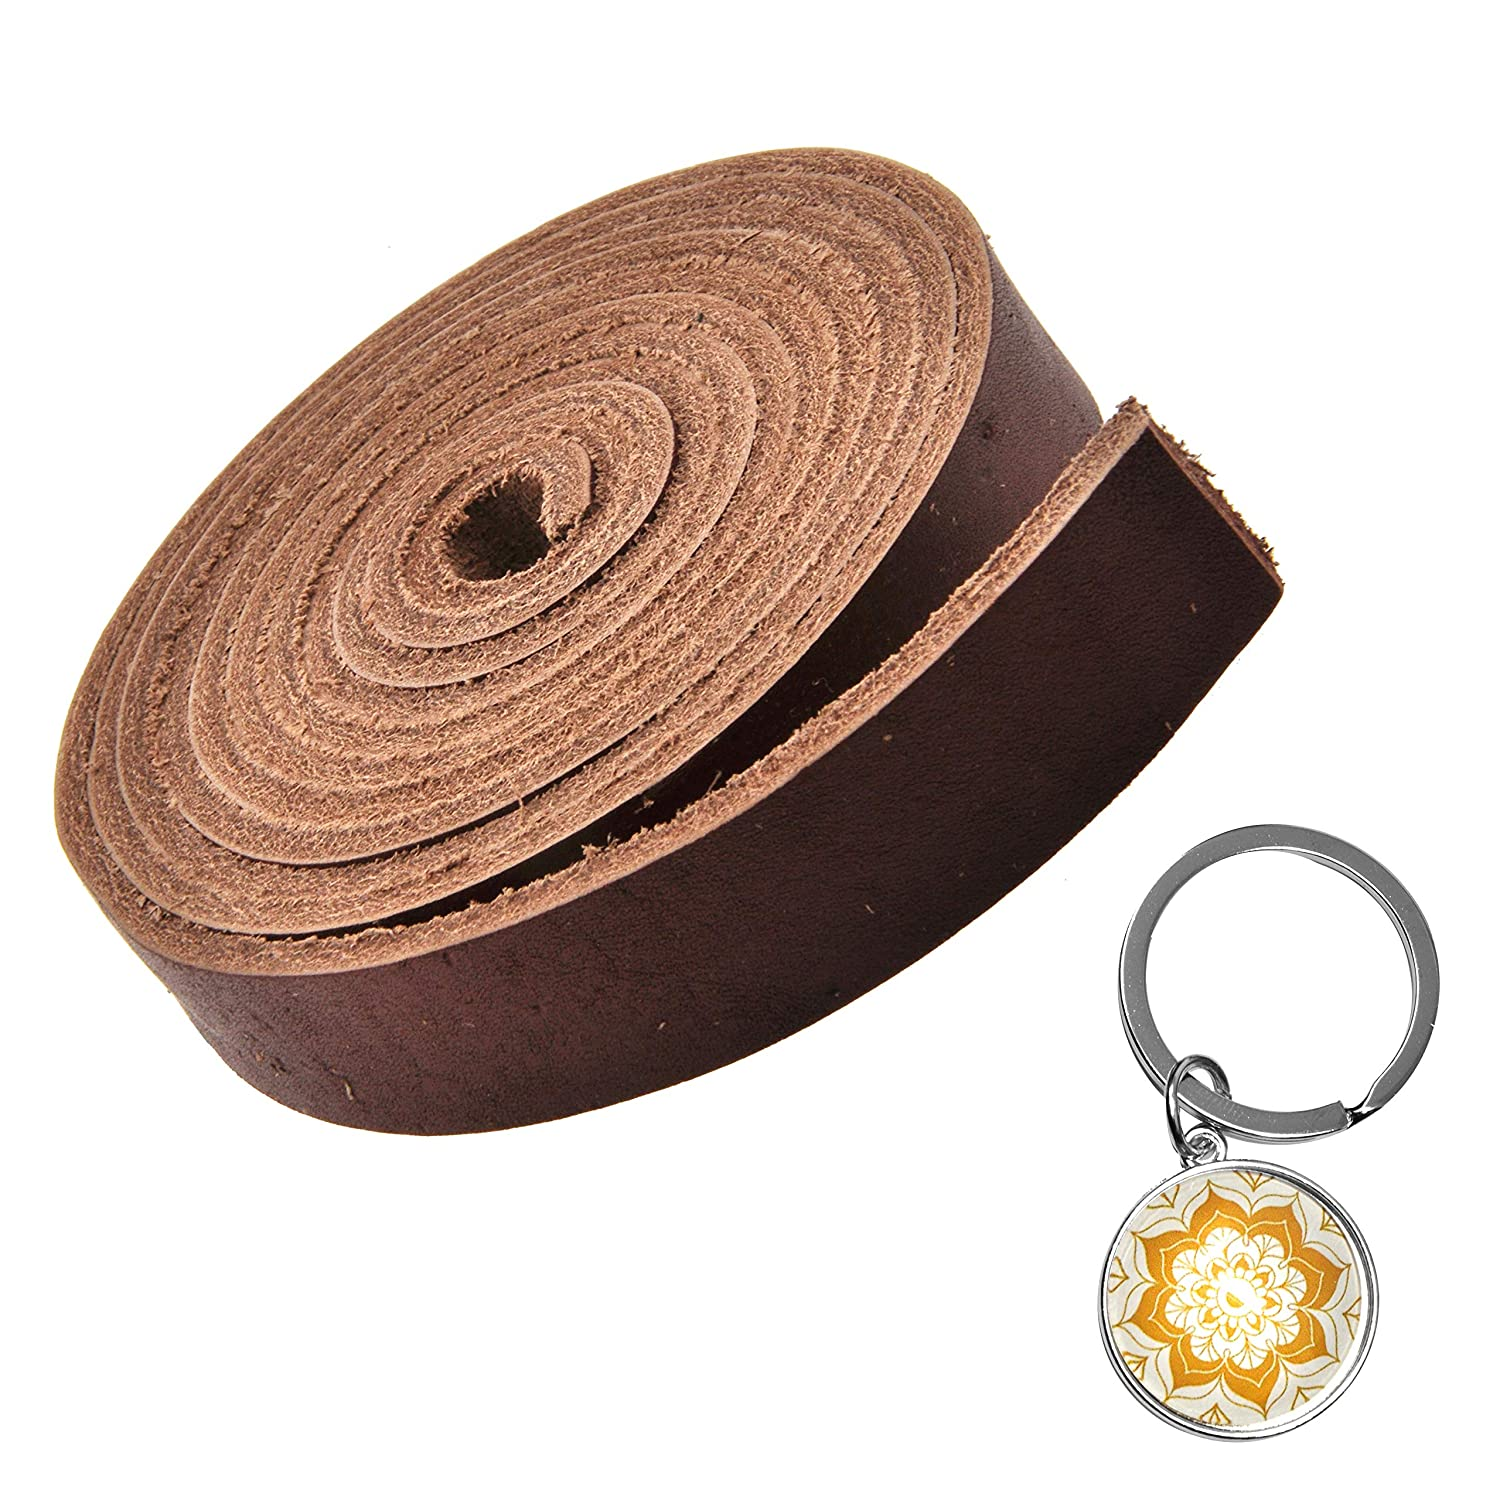 Mandala Craft Genuine Leather Strap, Flat Cowhide Strip Rope for Bags, Drawer Pulls, Handle Wraps, Ribbons, Clothing, Belts, Jewelry Making (1 Inch Wide, 72 Inches Long, Brown) Mandala Crafts